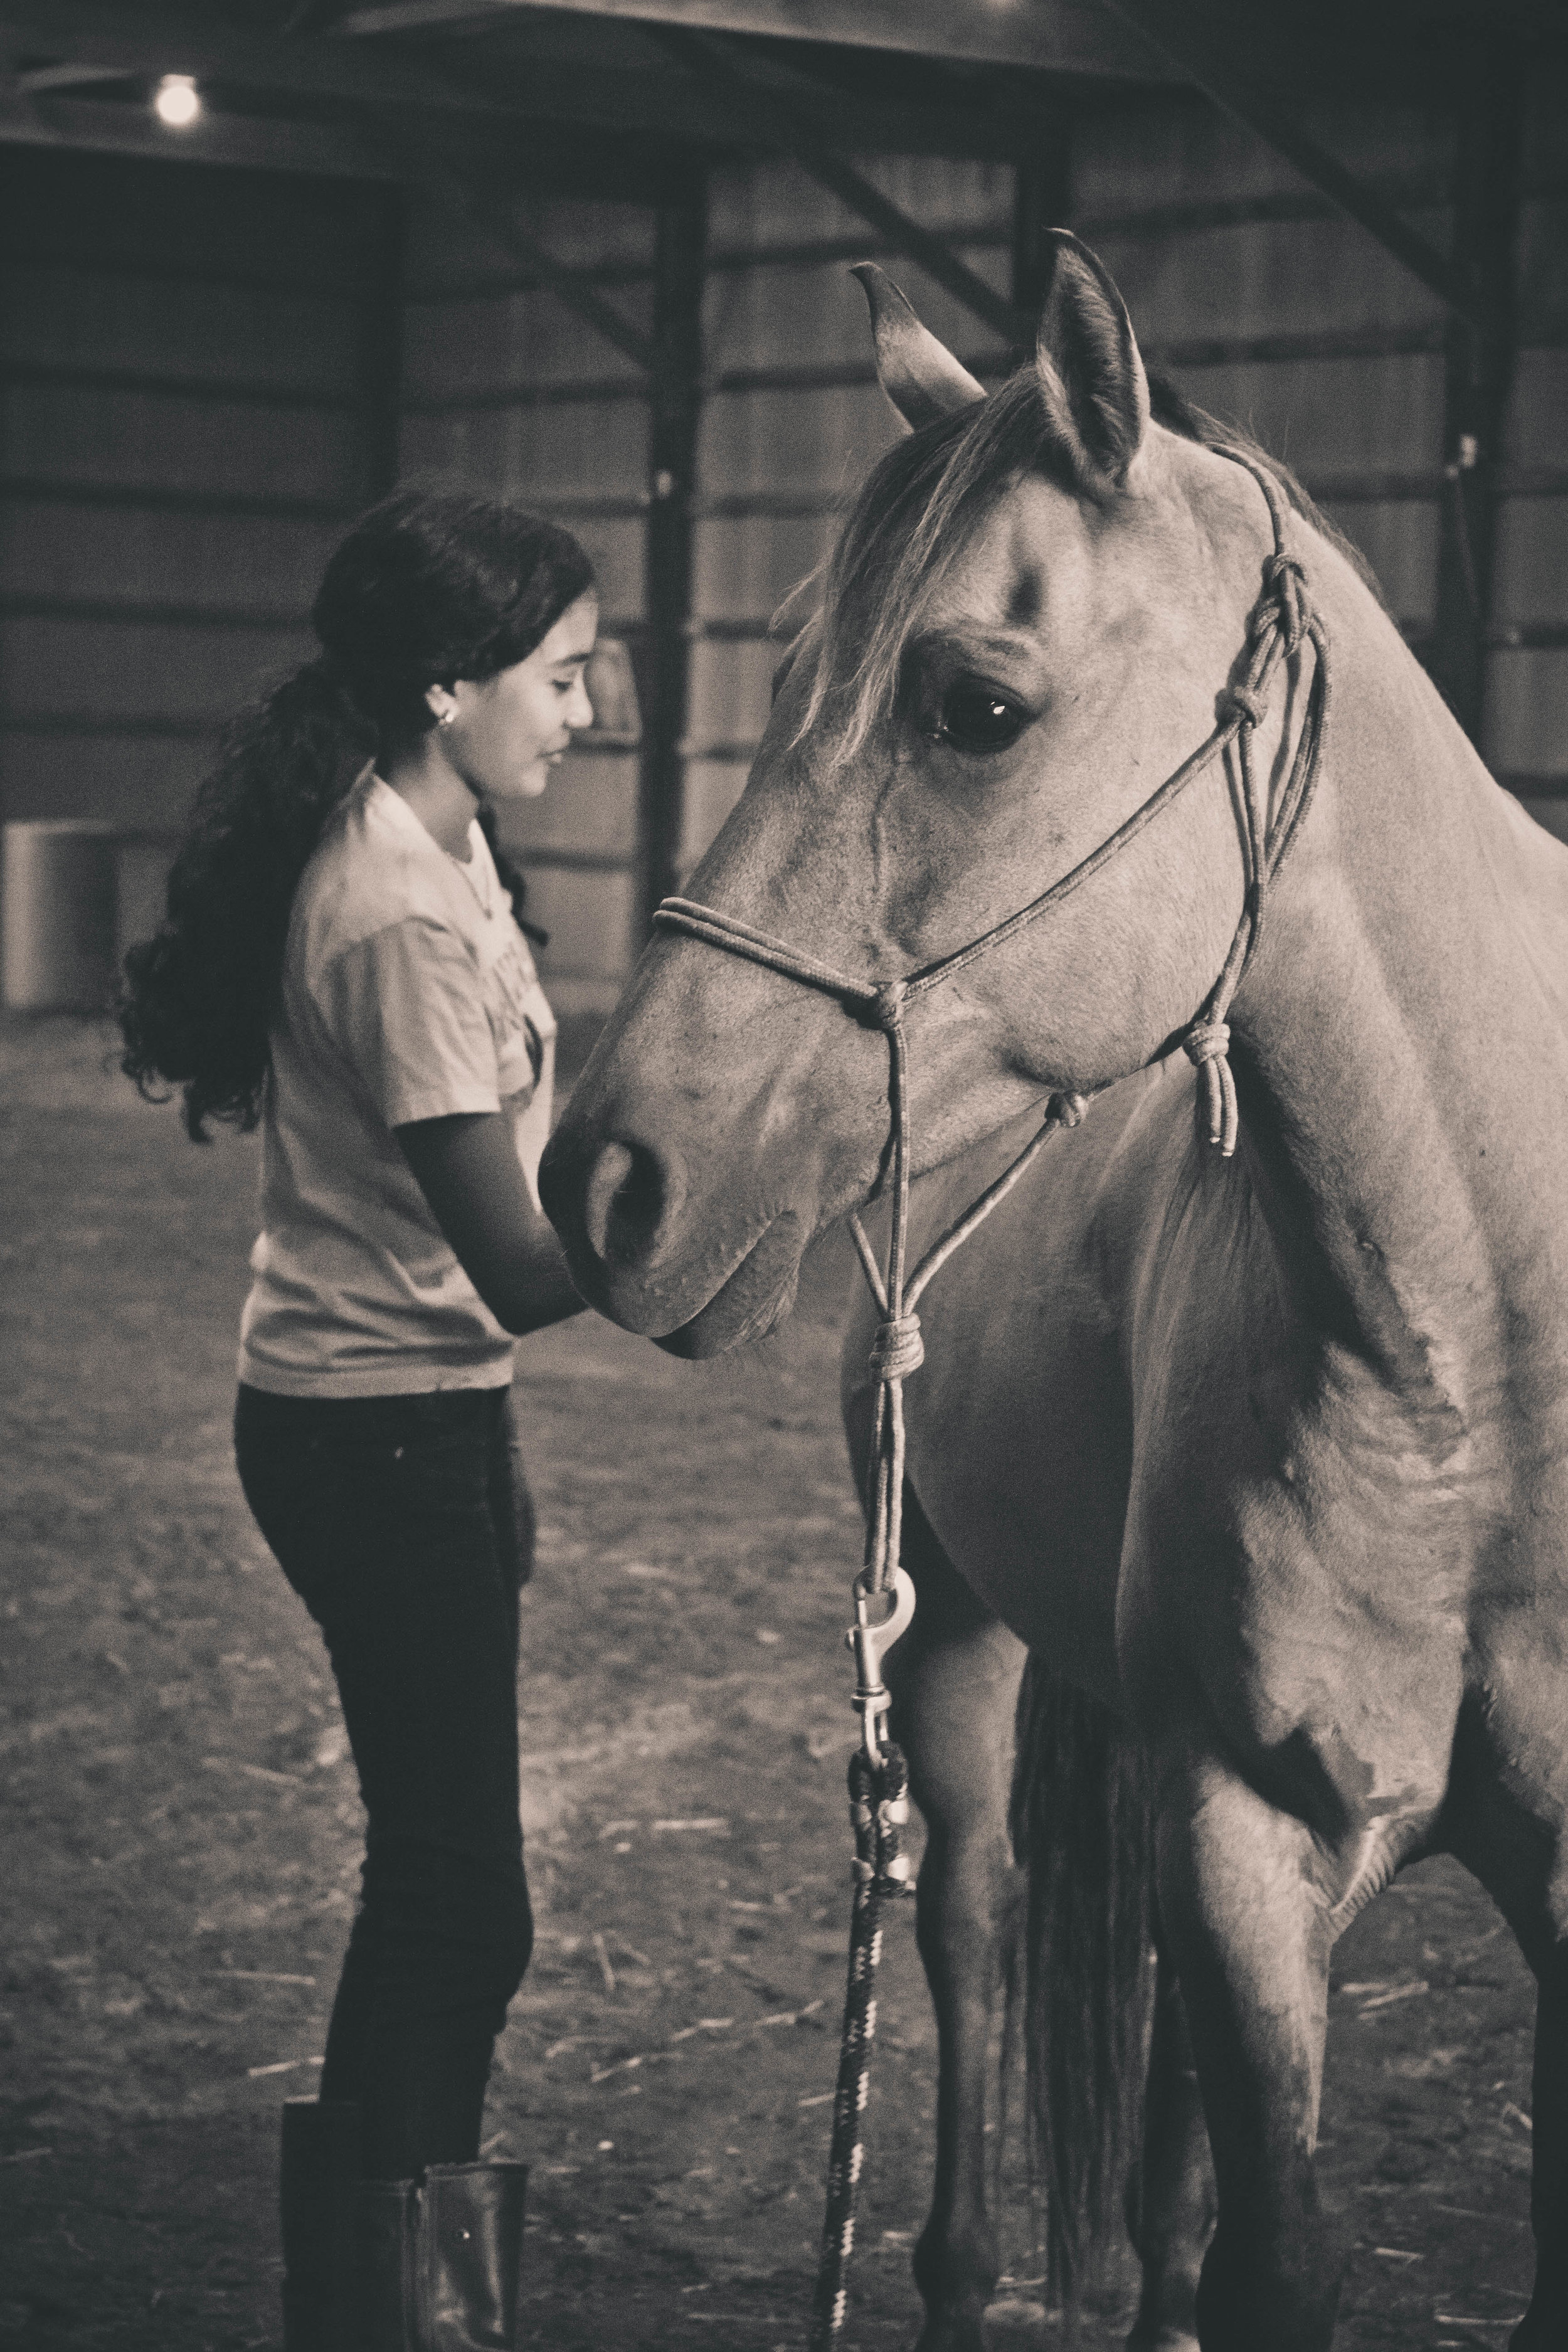 Riding Academy and Camps - Fairhope Stables offers riding lessons tailored to fit your needs.